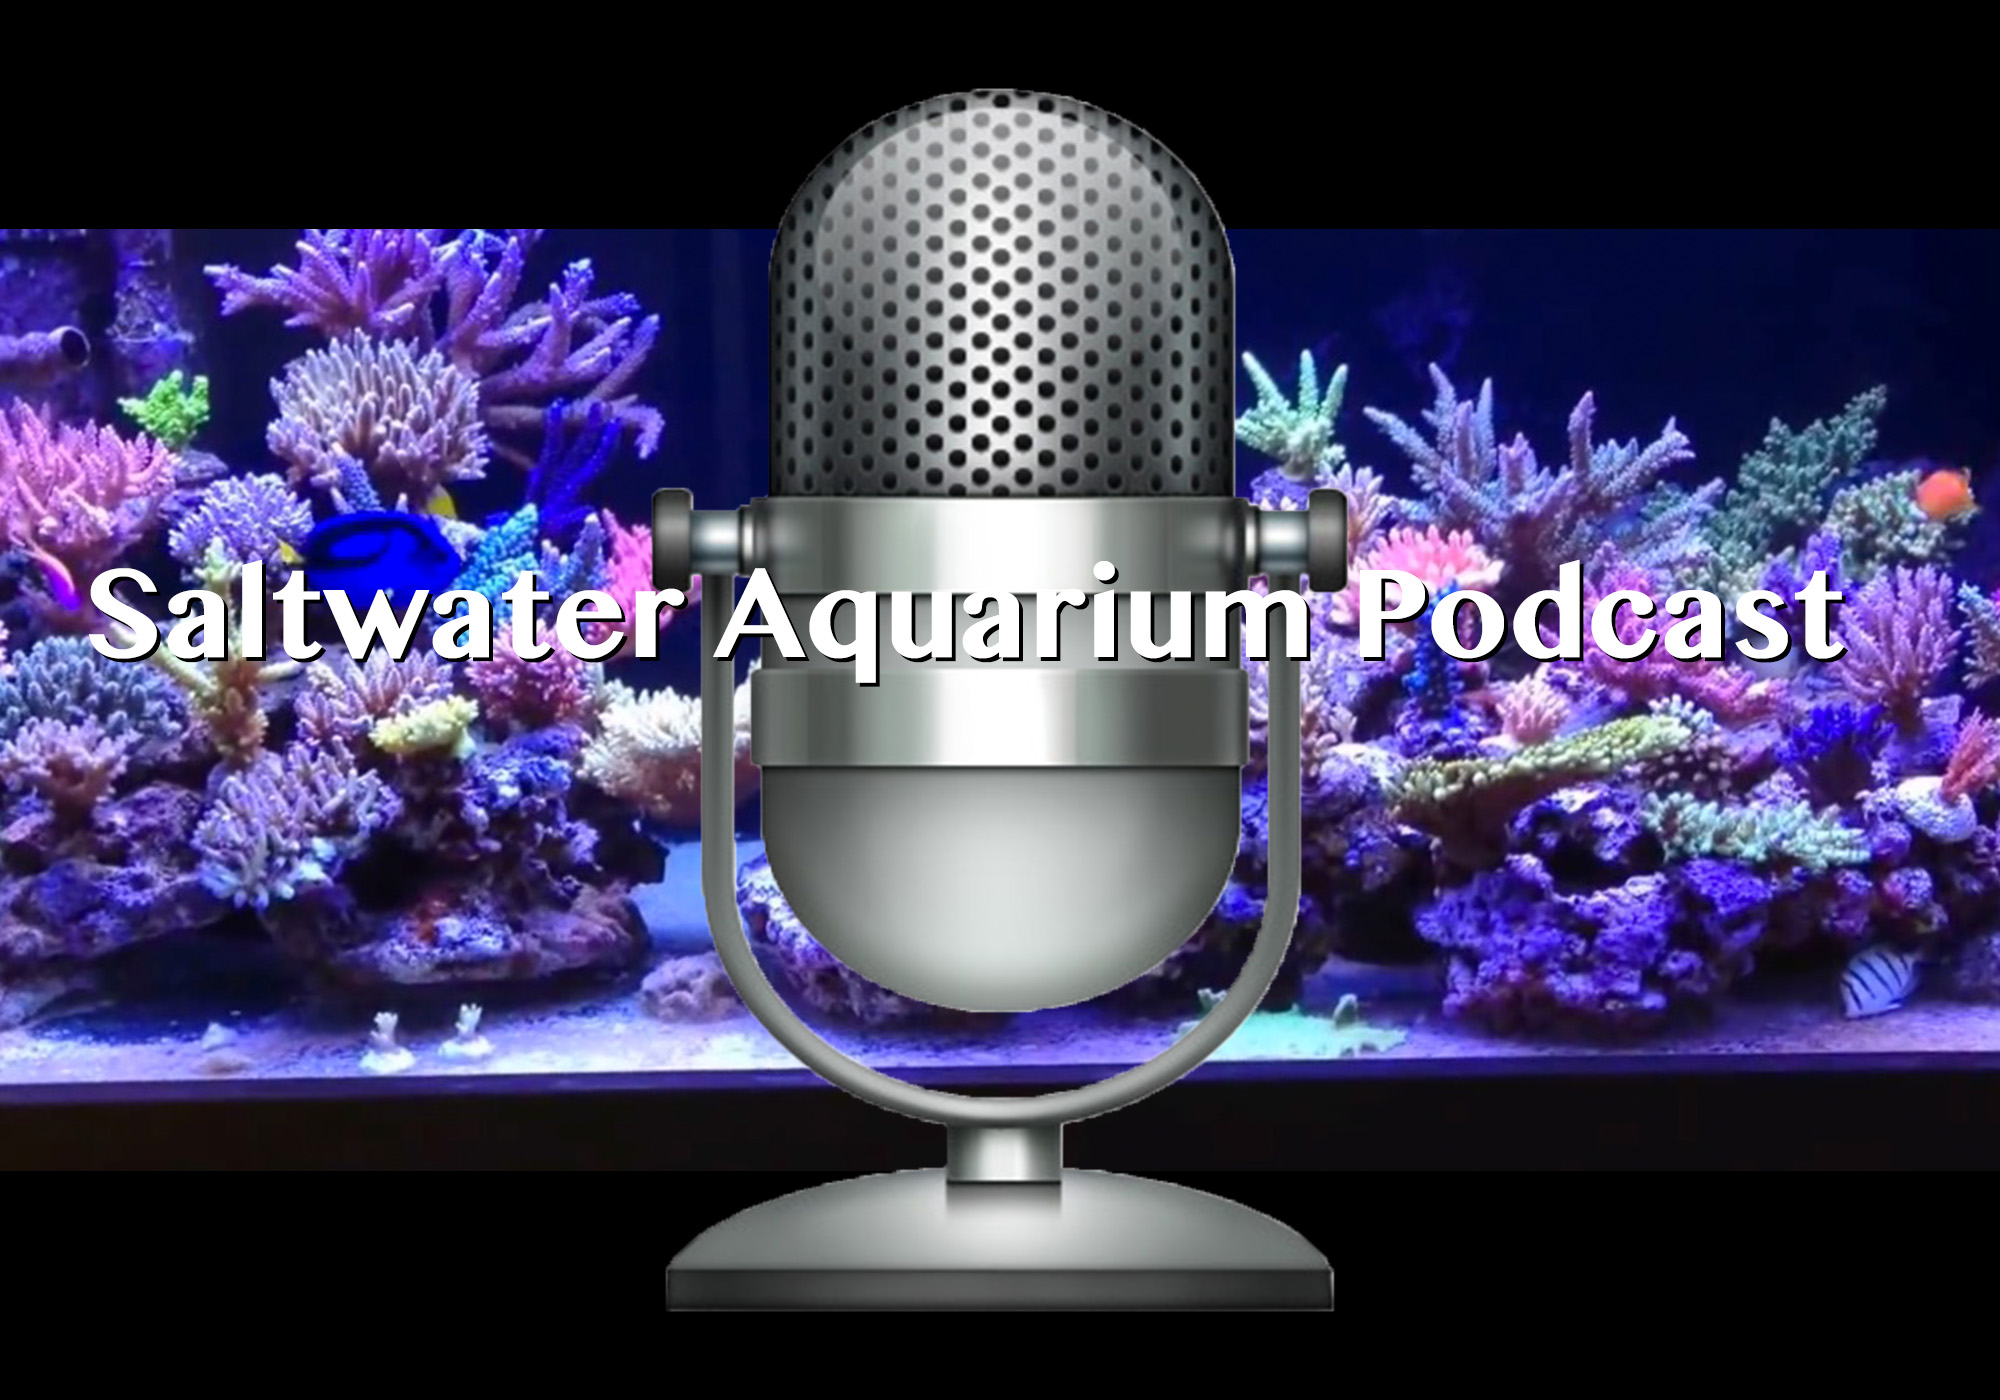 Aquarium Podcast